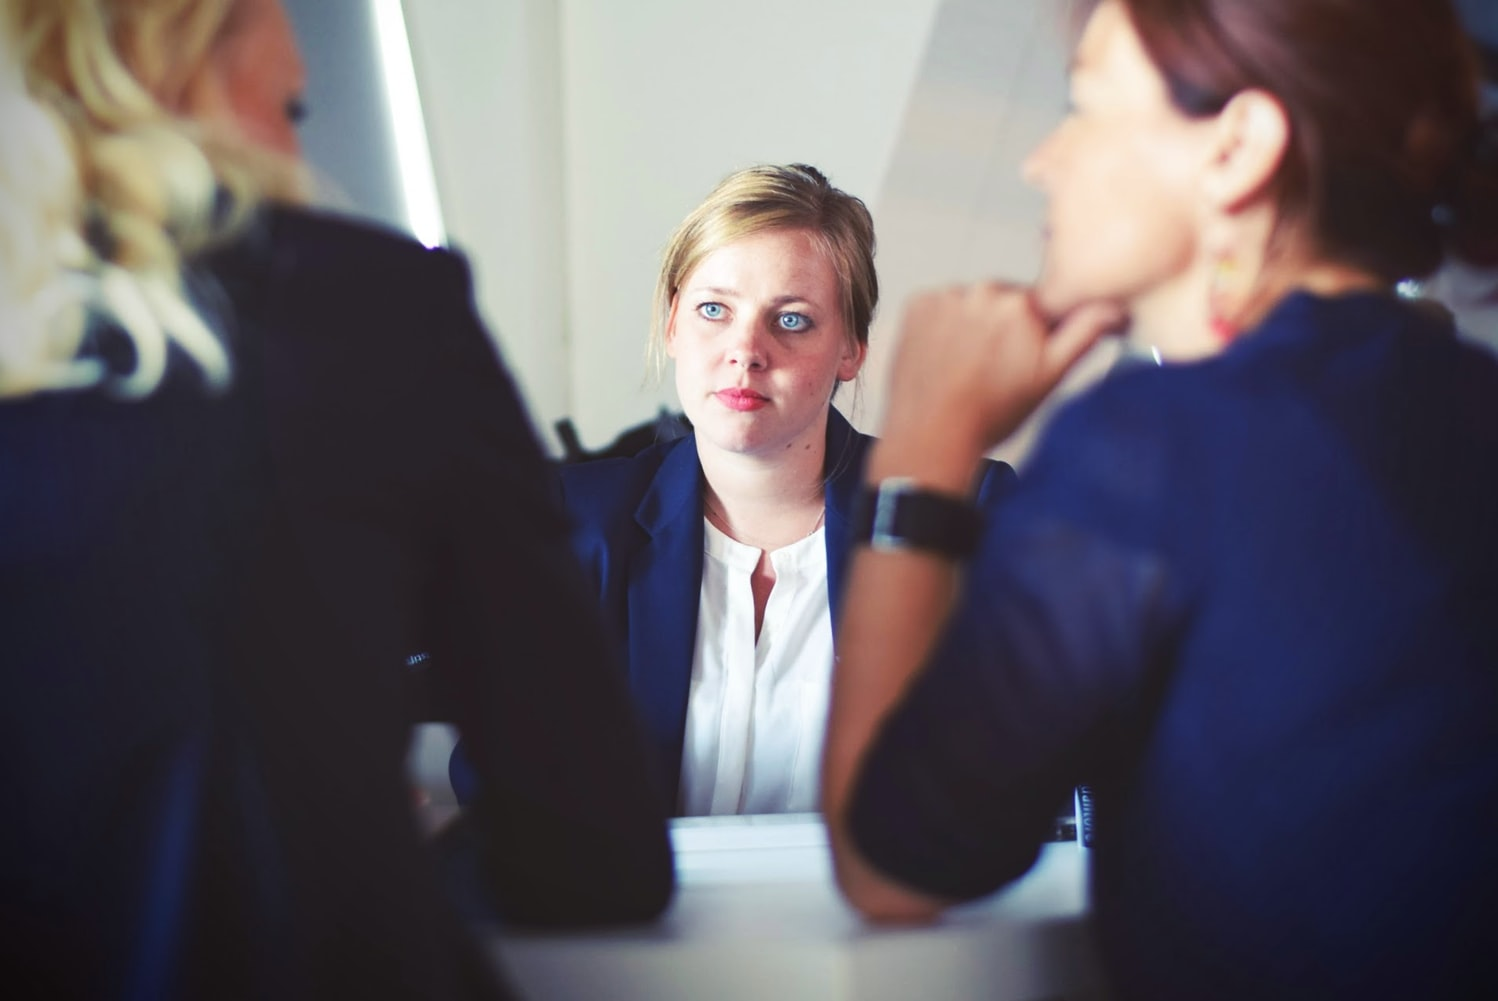 woman looking concerned in a business meeting